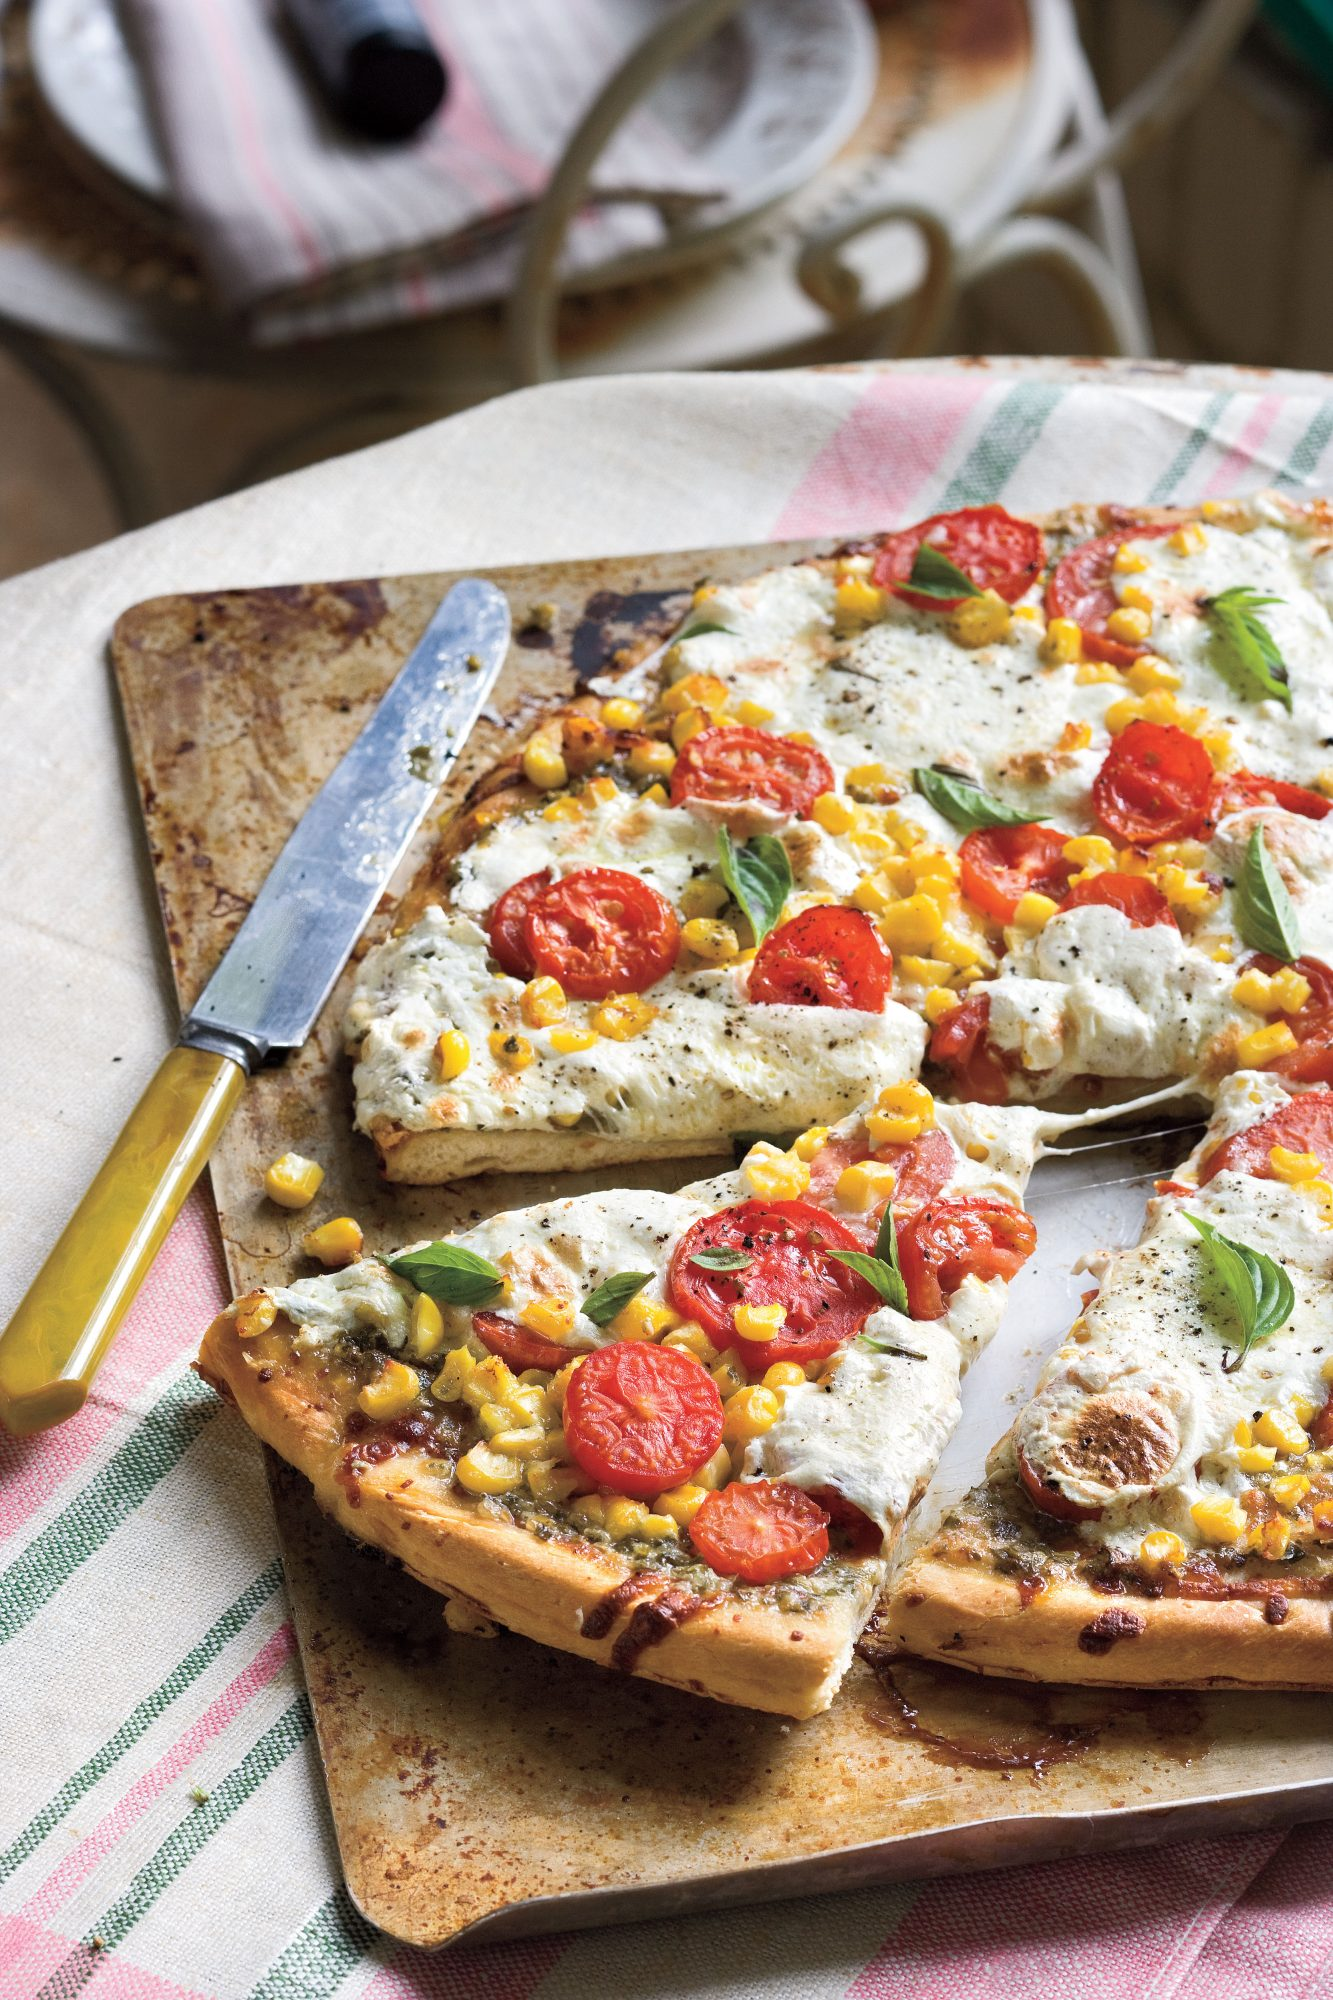 Summer Local Produce Recipes: Tomato-and-Corn Pizza